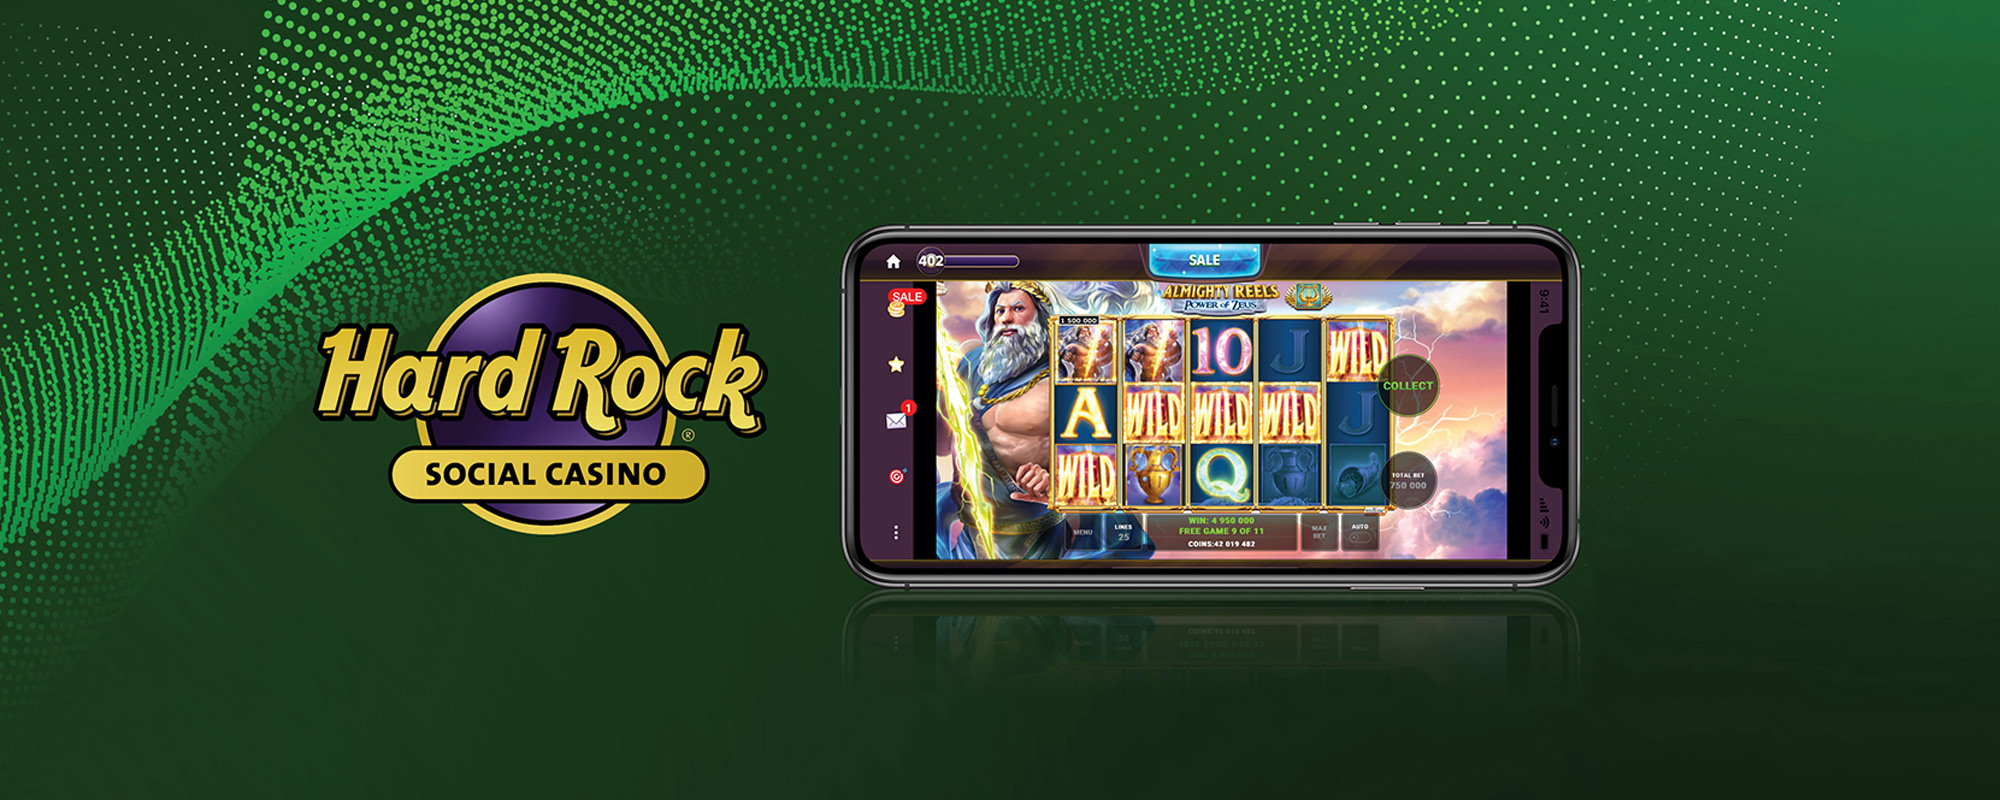 Play online at Hard Rock Social Casino